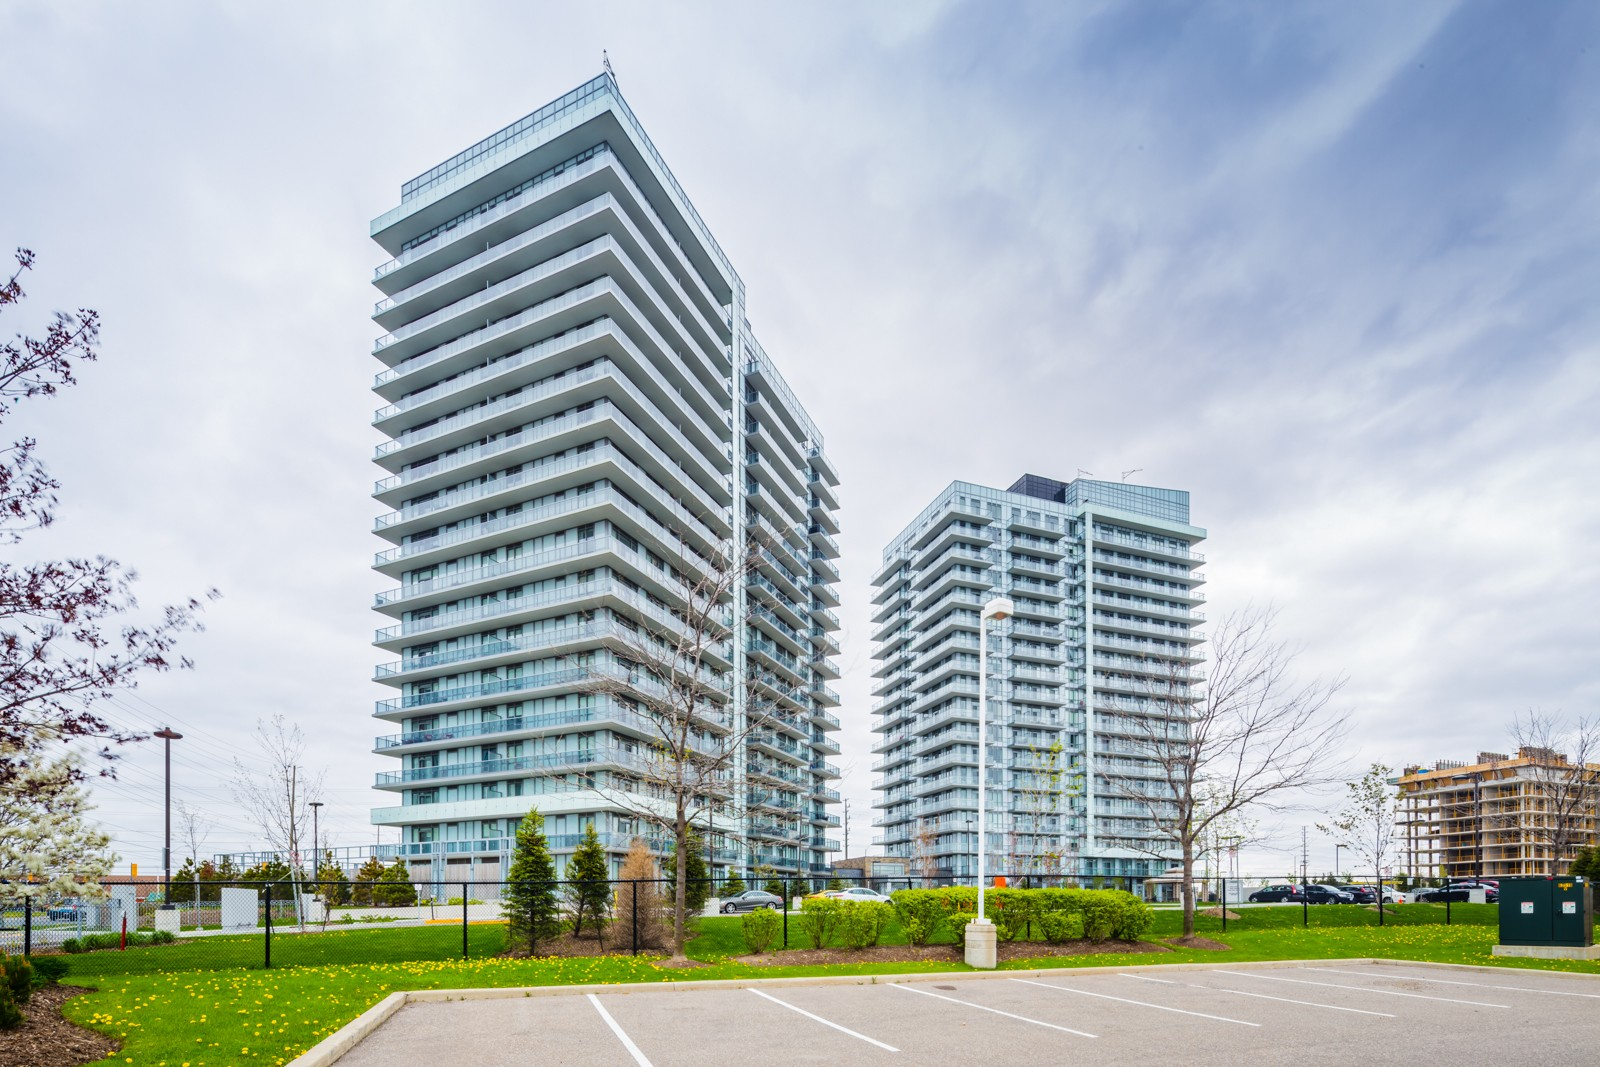 Downtown Erin Mills 2 at 4655 Glen Erin Dr, Mississauga 0